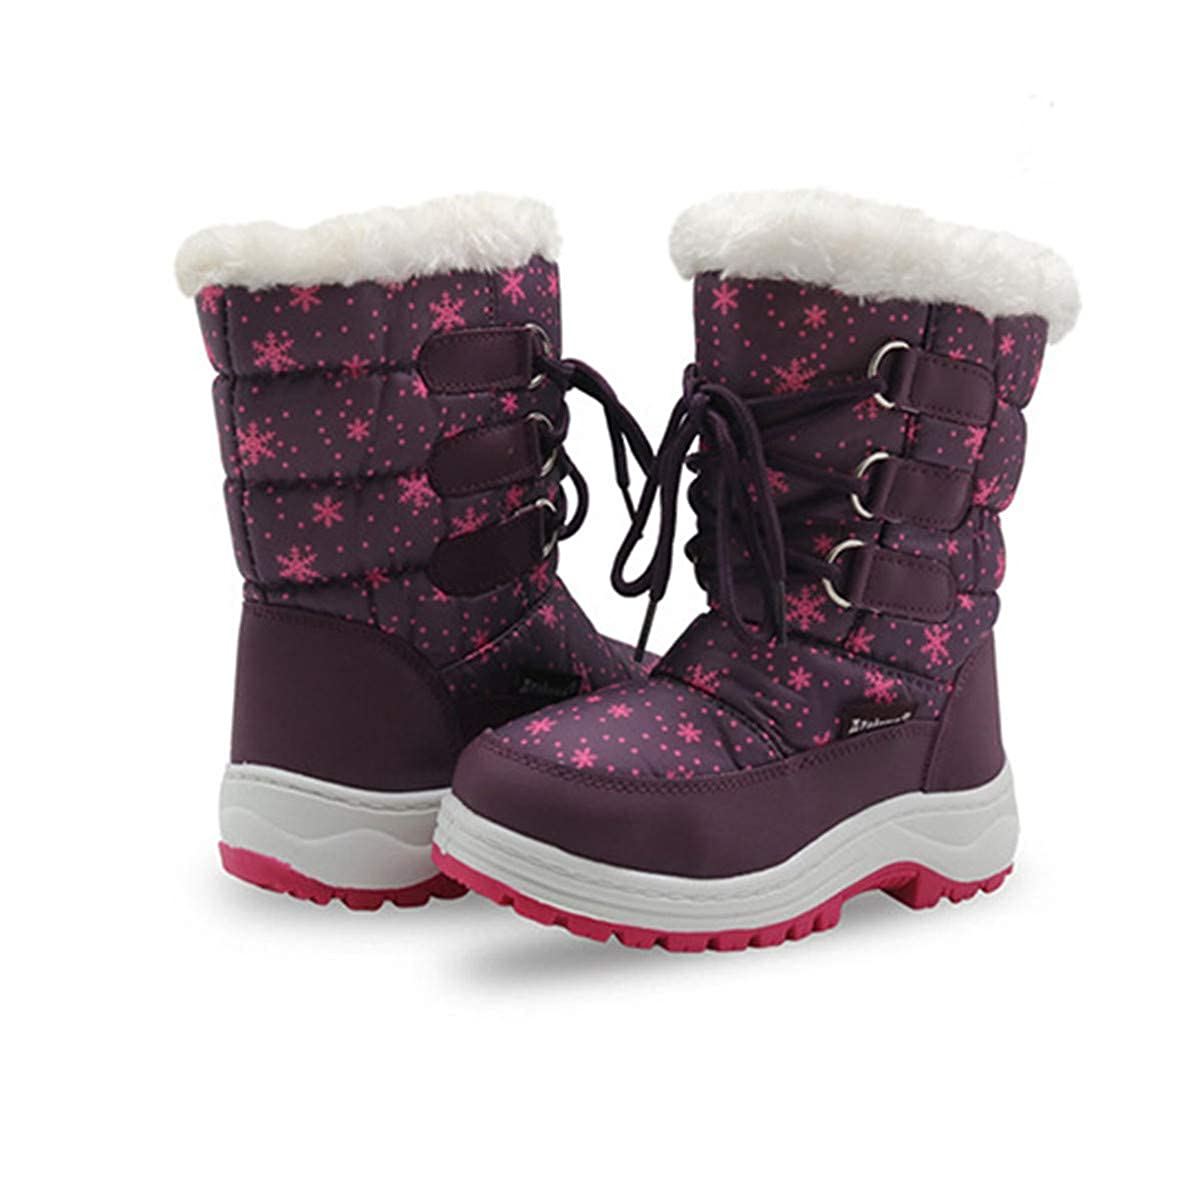 LLBubble Boys Girls Outdoor Waterproof Kid Boots Lace-up Cold Weather Snow Boots